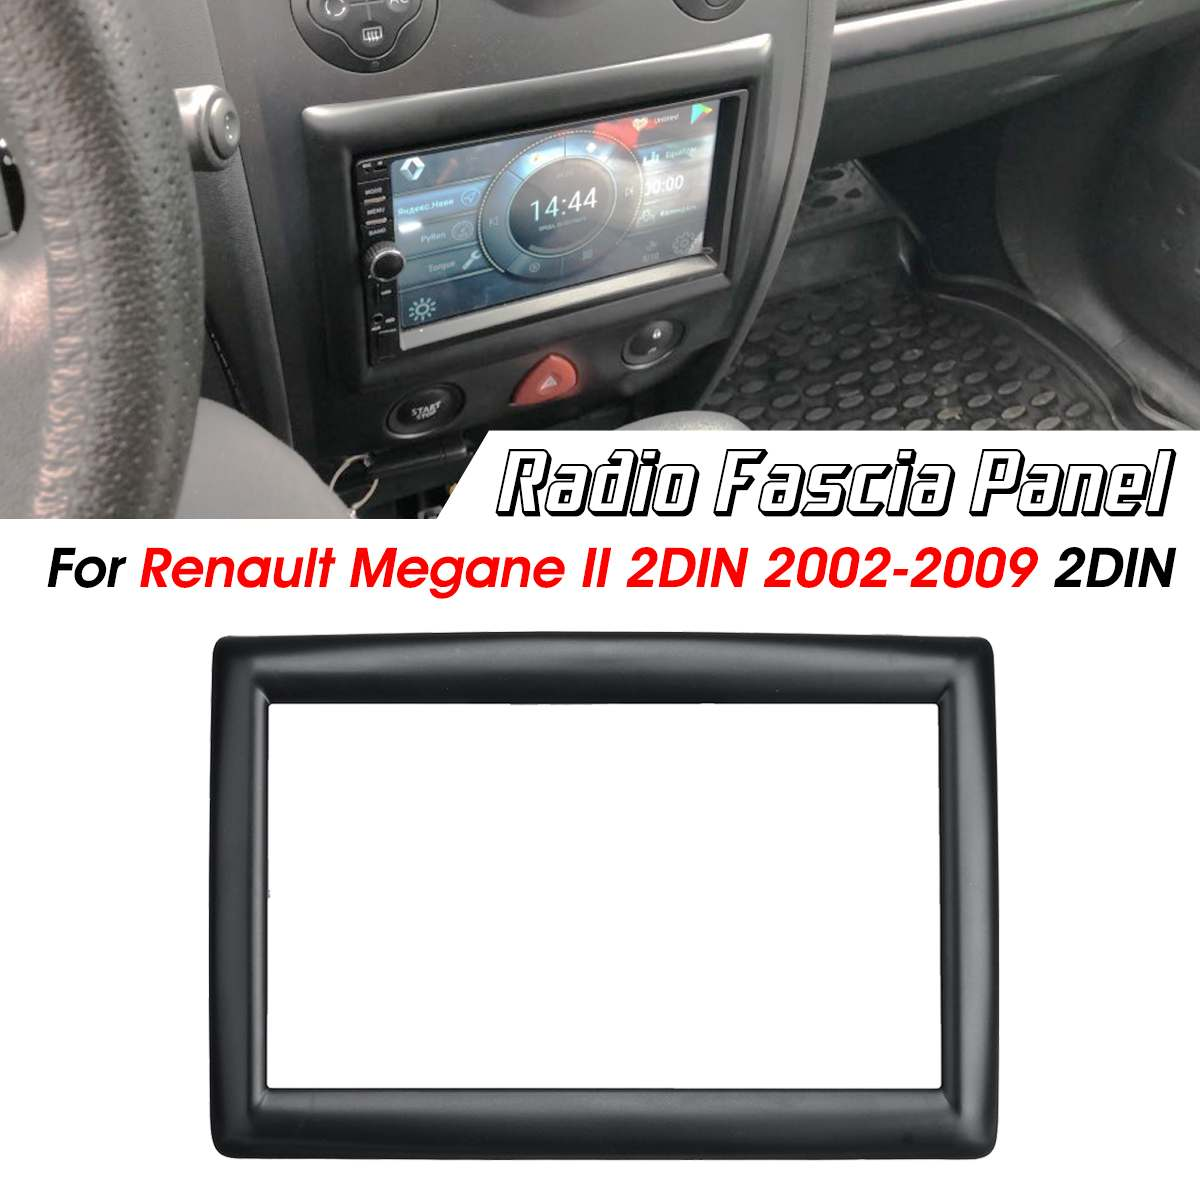 2 Din Car Stereo Radio Fascia Frame Panel Adapter Cover Trim For Renault Megane Ii 2003-2009 Exquisite Craftsmanship;